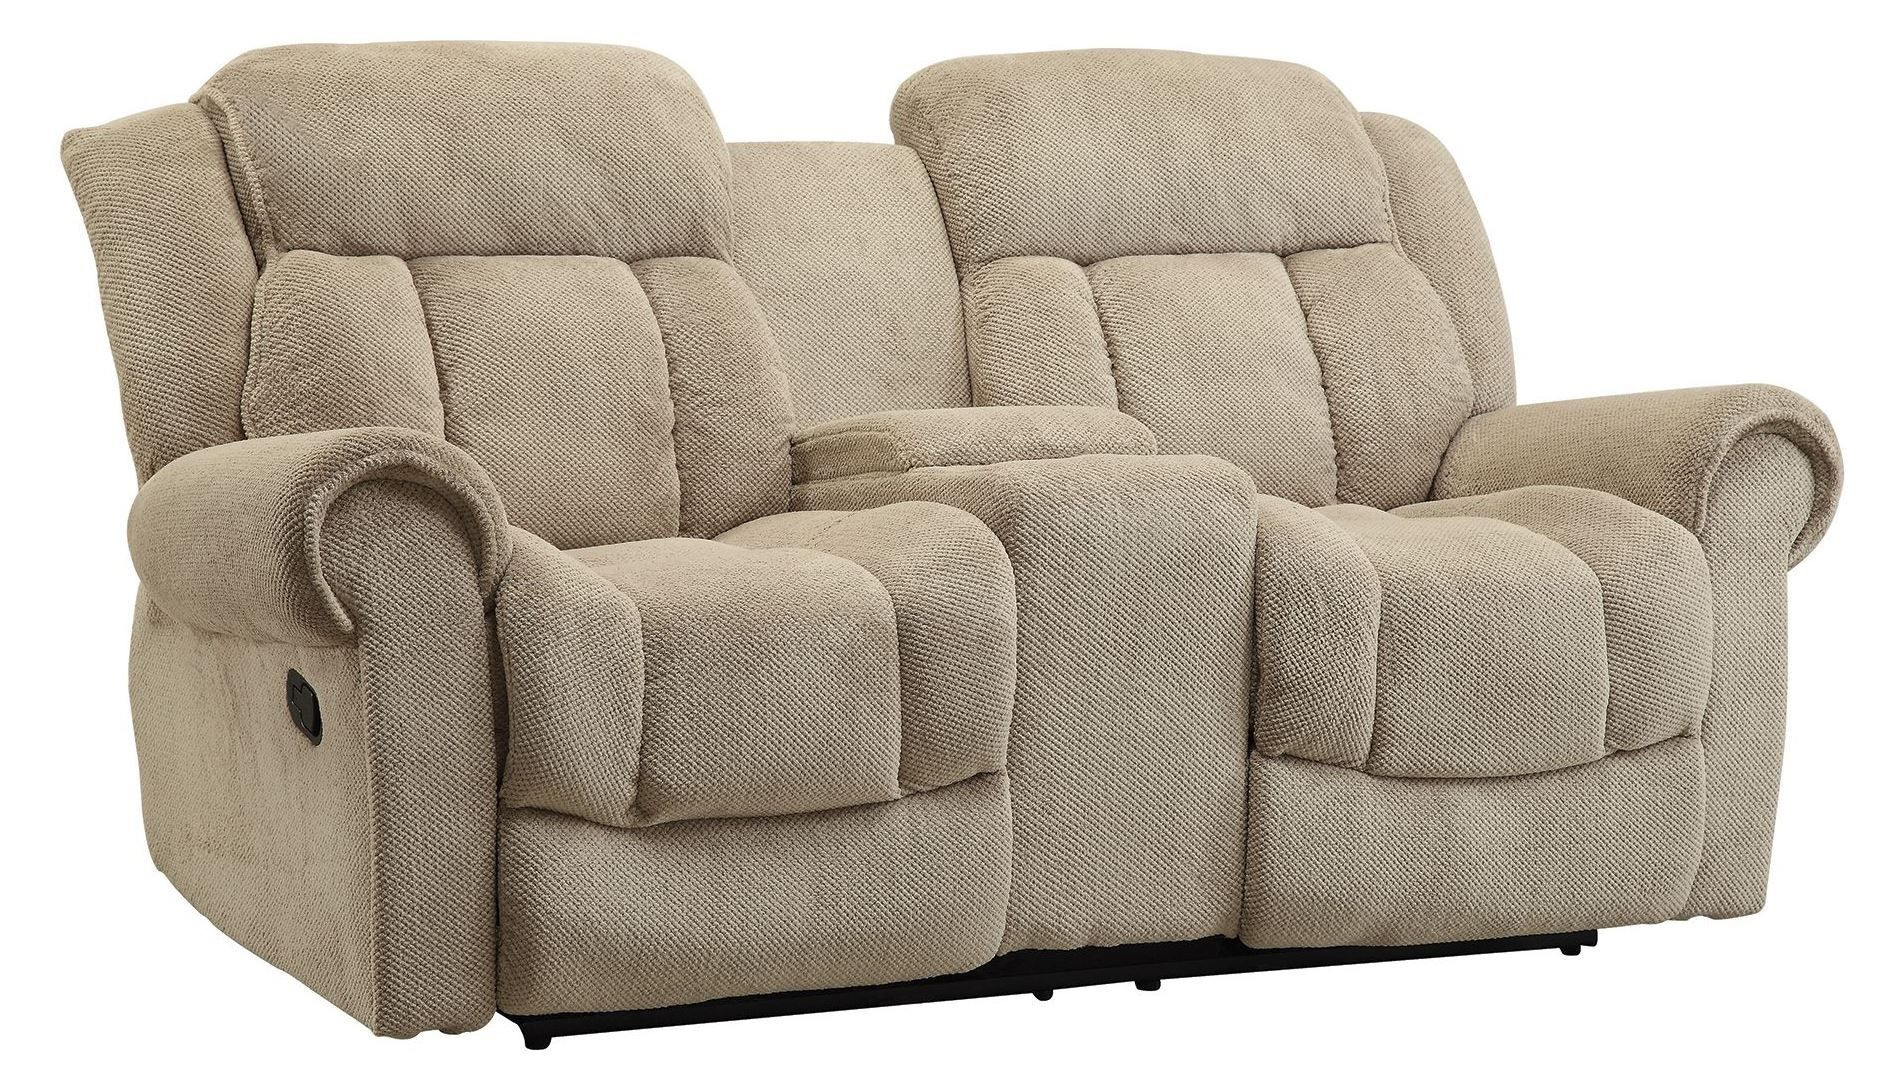 Reige Motion Taupe Reclining Loveseat From Coaster 601592